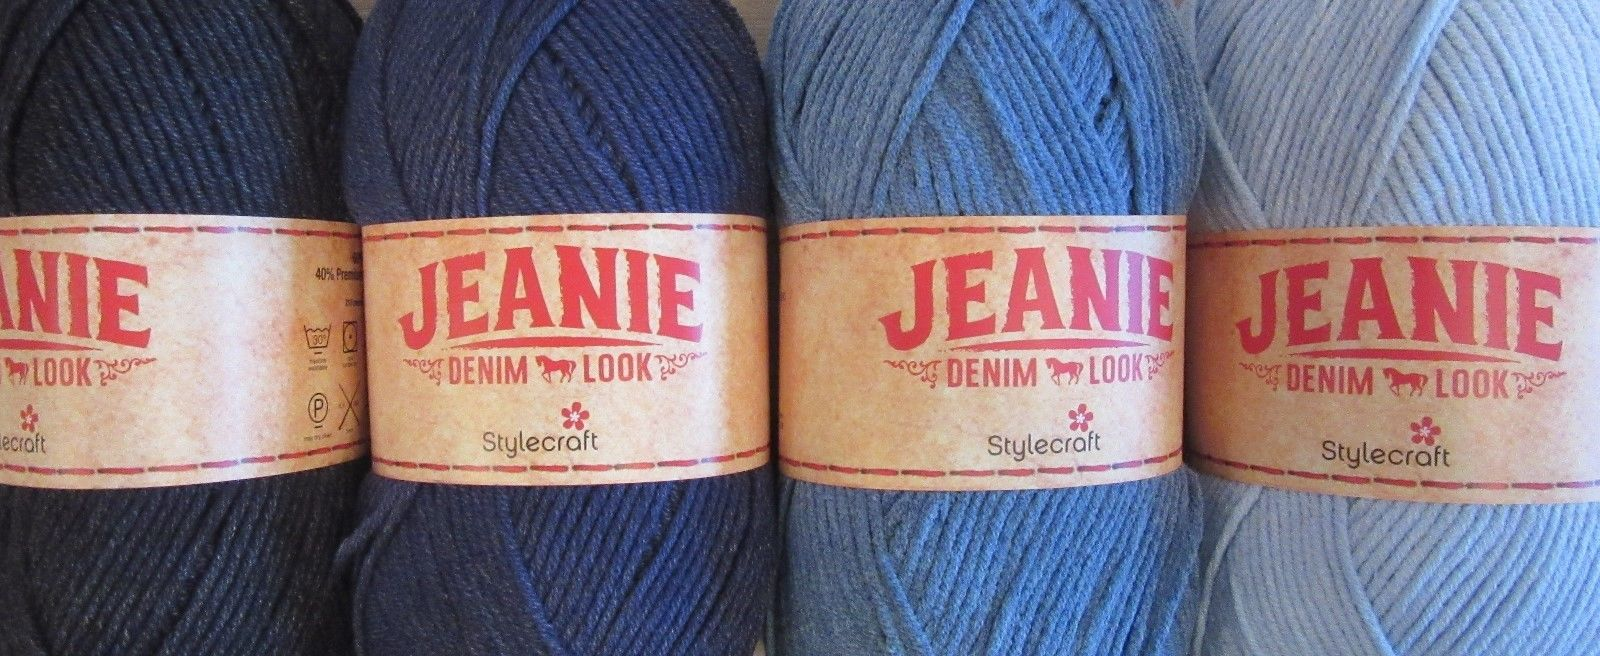 "100g Fashion Yarn. Stylecraft  /""Jeanie Denim Look/"" Aran Knitting Yarn Acrylic"